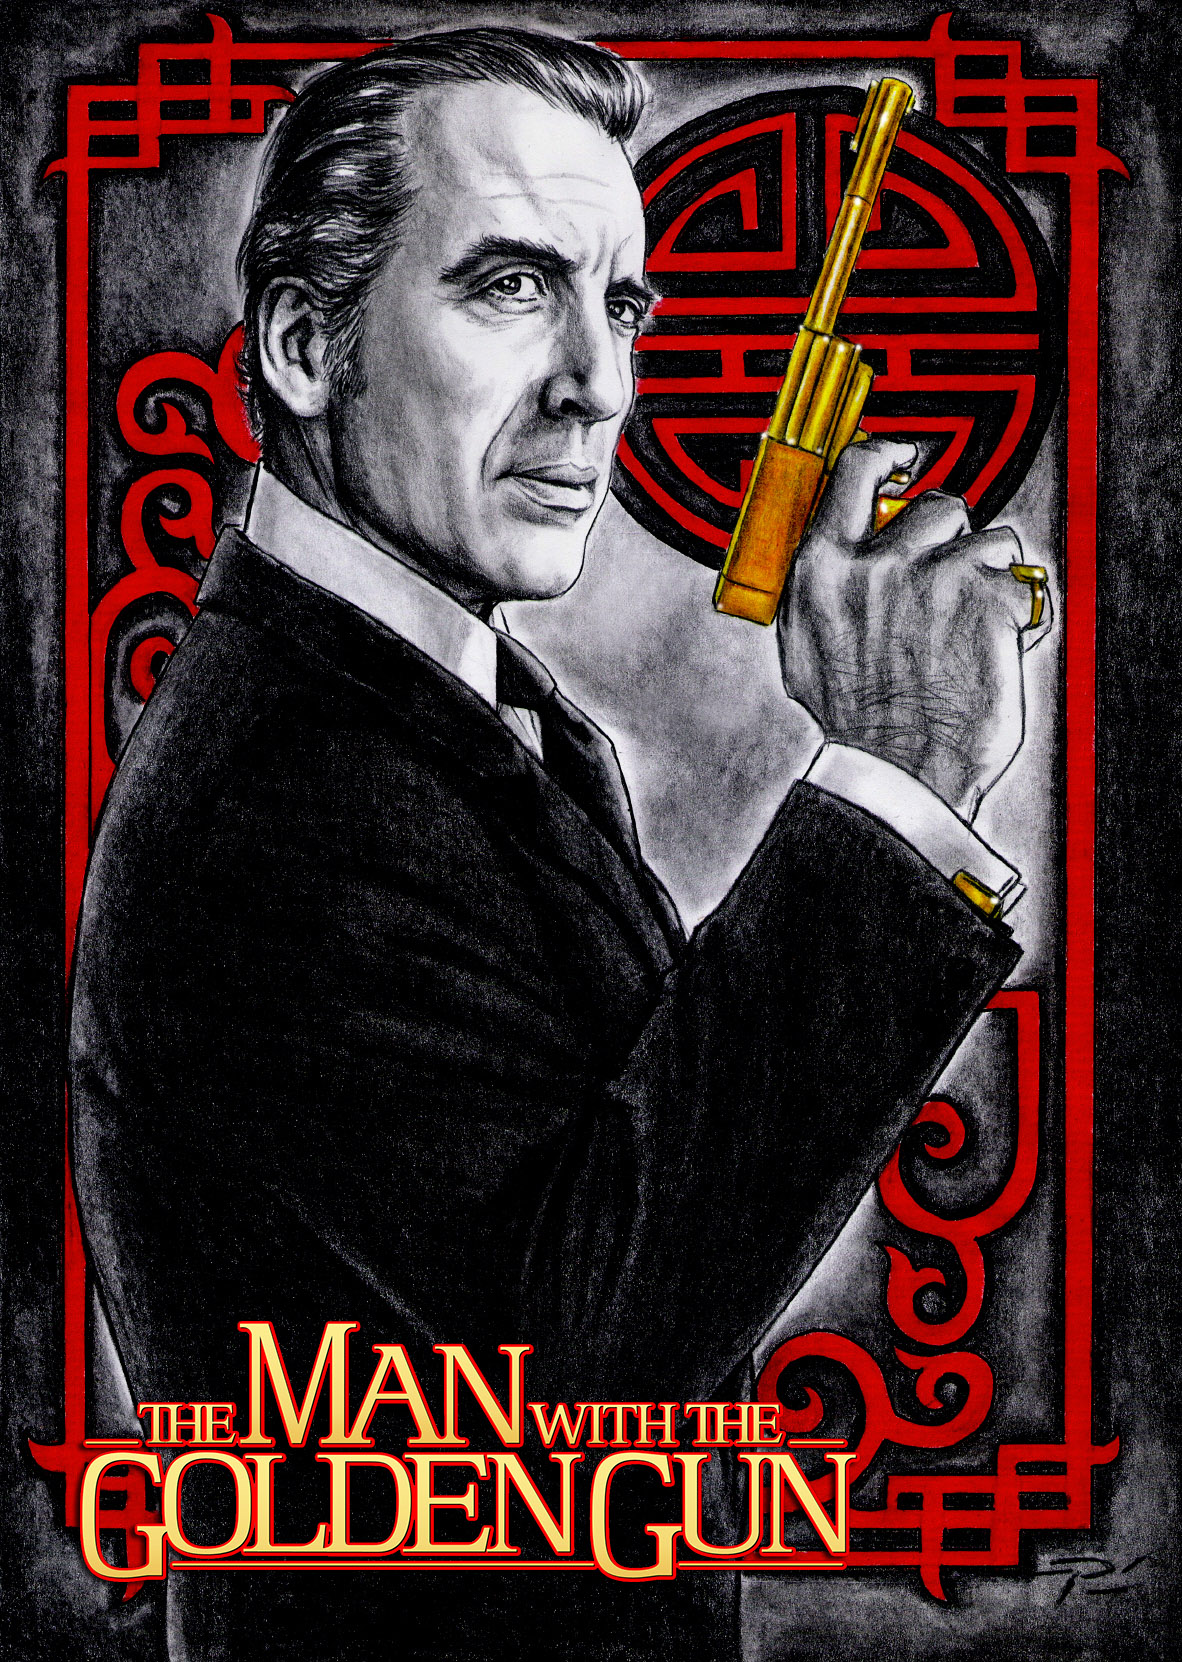 Christoper Lee Poster art